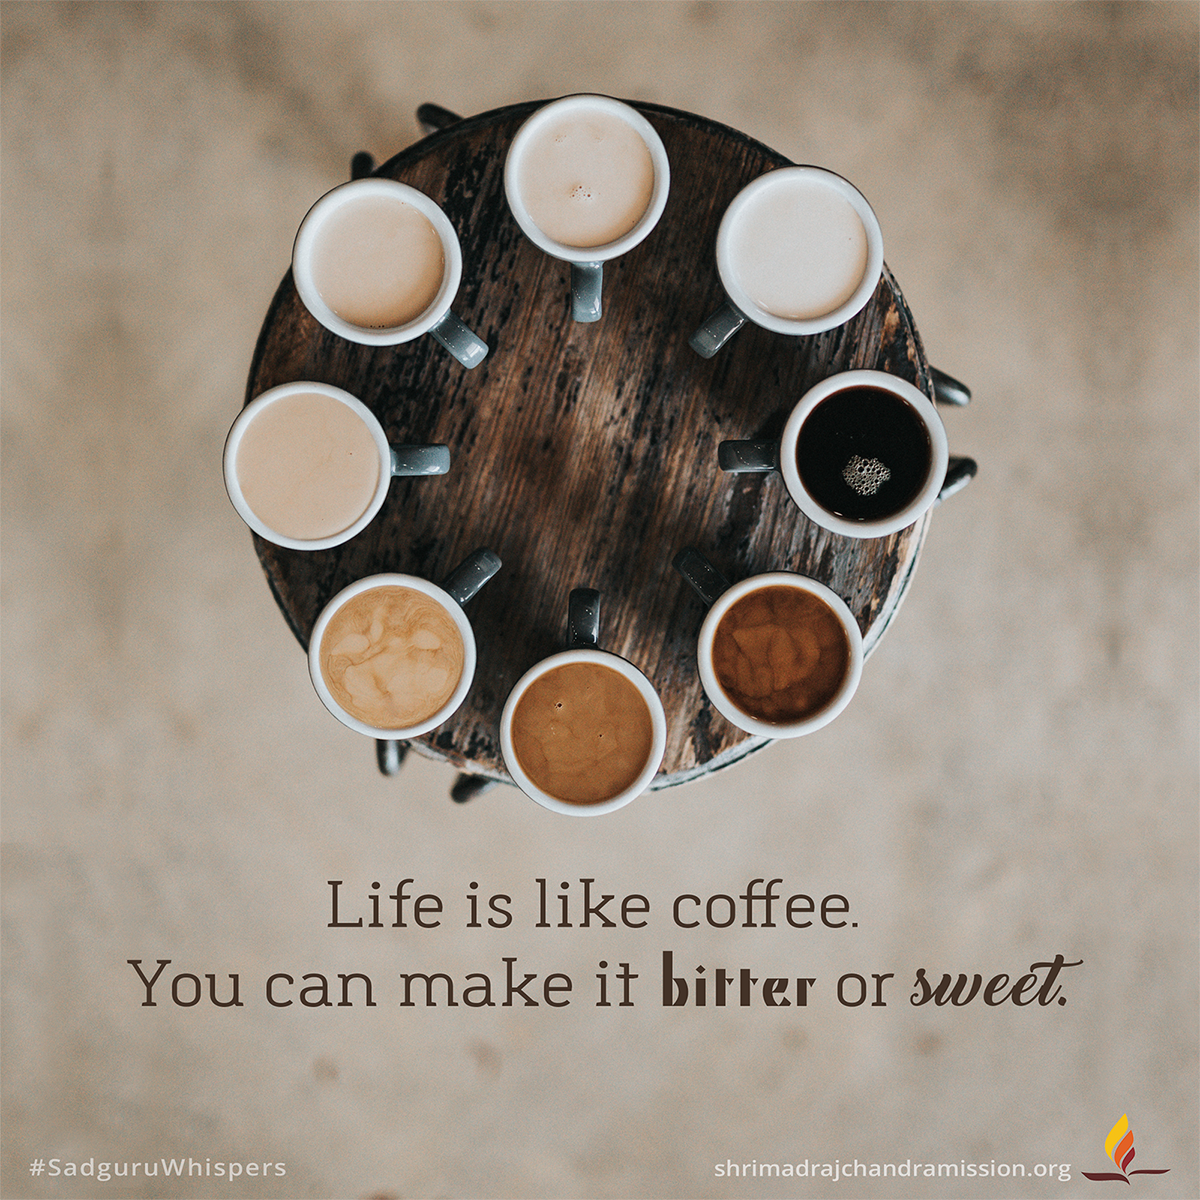 Life Is Like Coffee You Can Make It Bitter Or Sweet Sadguruwhispers Quotes Qotd Life Lifequotes T Coffee Quotes Coffee Quotes Funny Funny Coffee Quotes